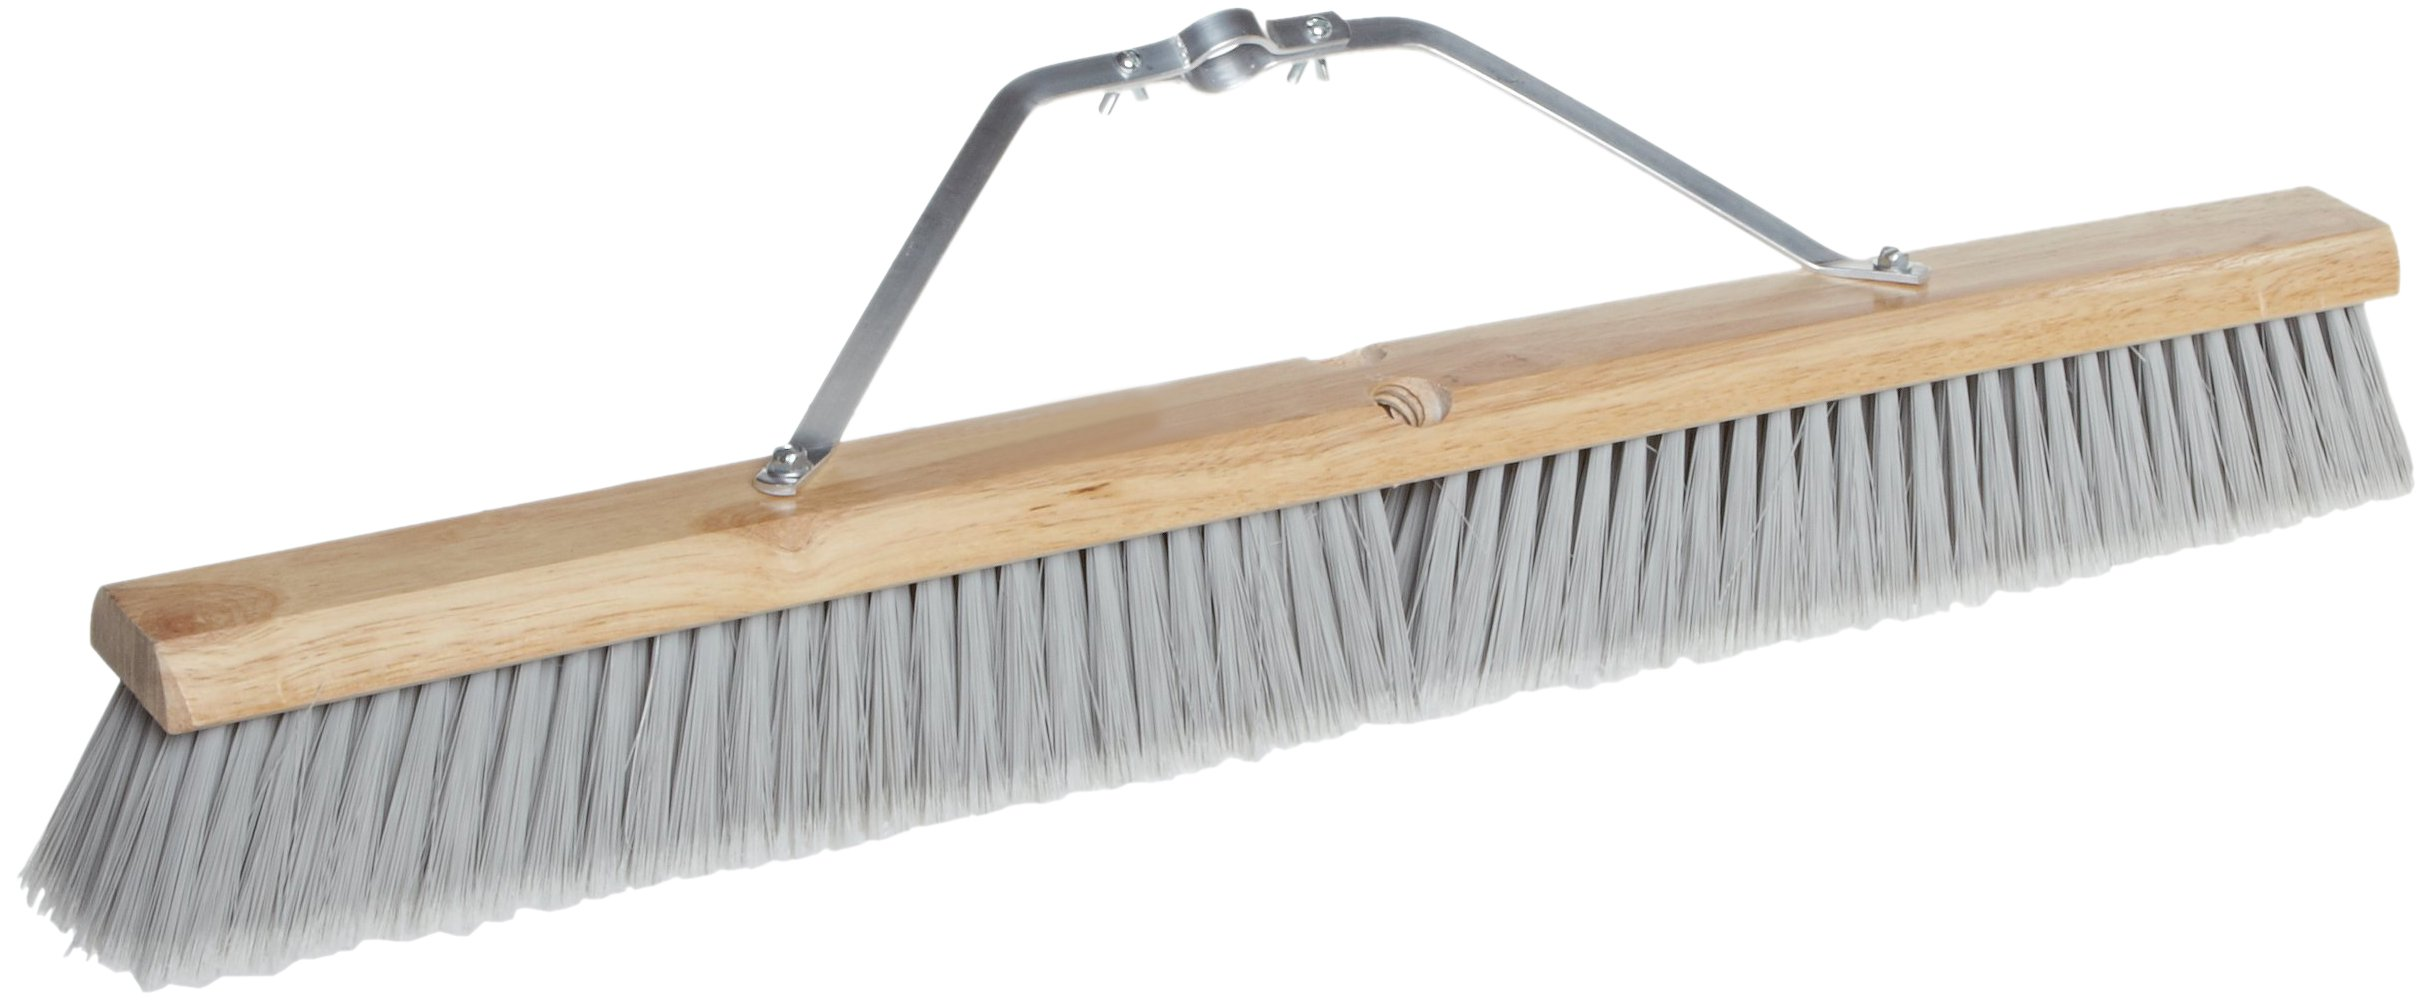 Magnolia Brush 3730 LH Line Floor Brush, Flagged-Tip Plastic Bristles, 3'' Trim, 30'' Length, Silver (Case of 6) by Magnolia Brush (Image #1)